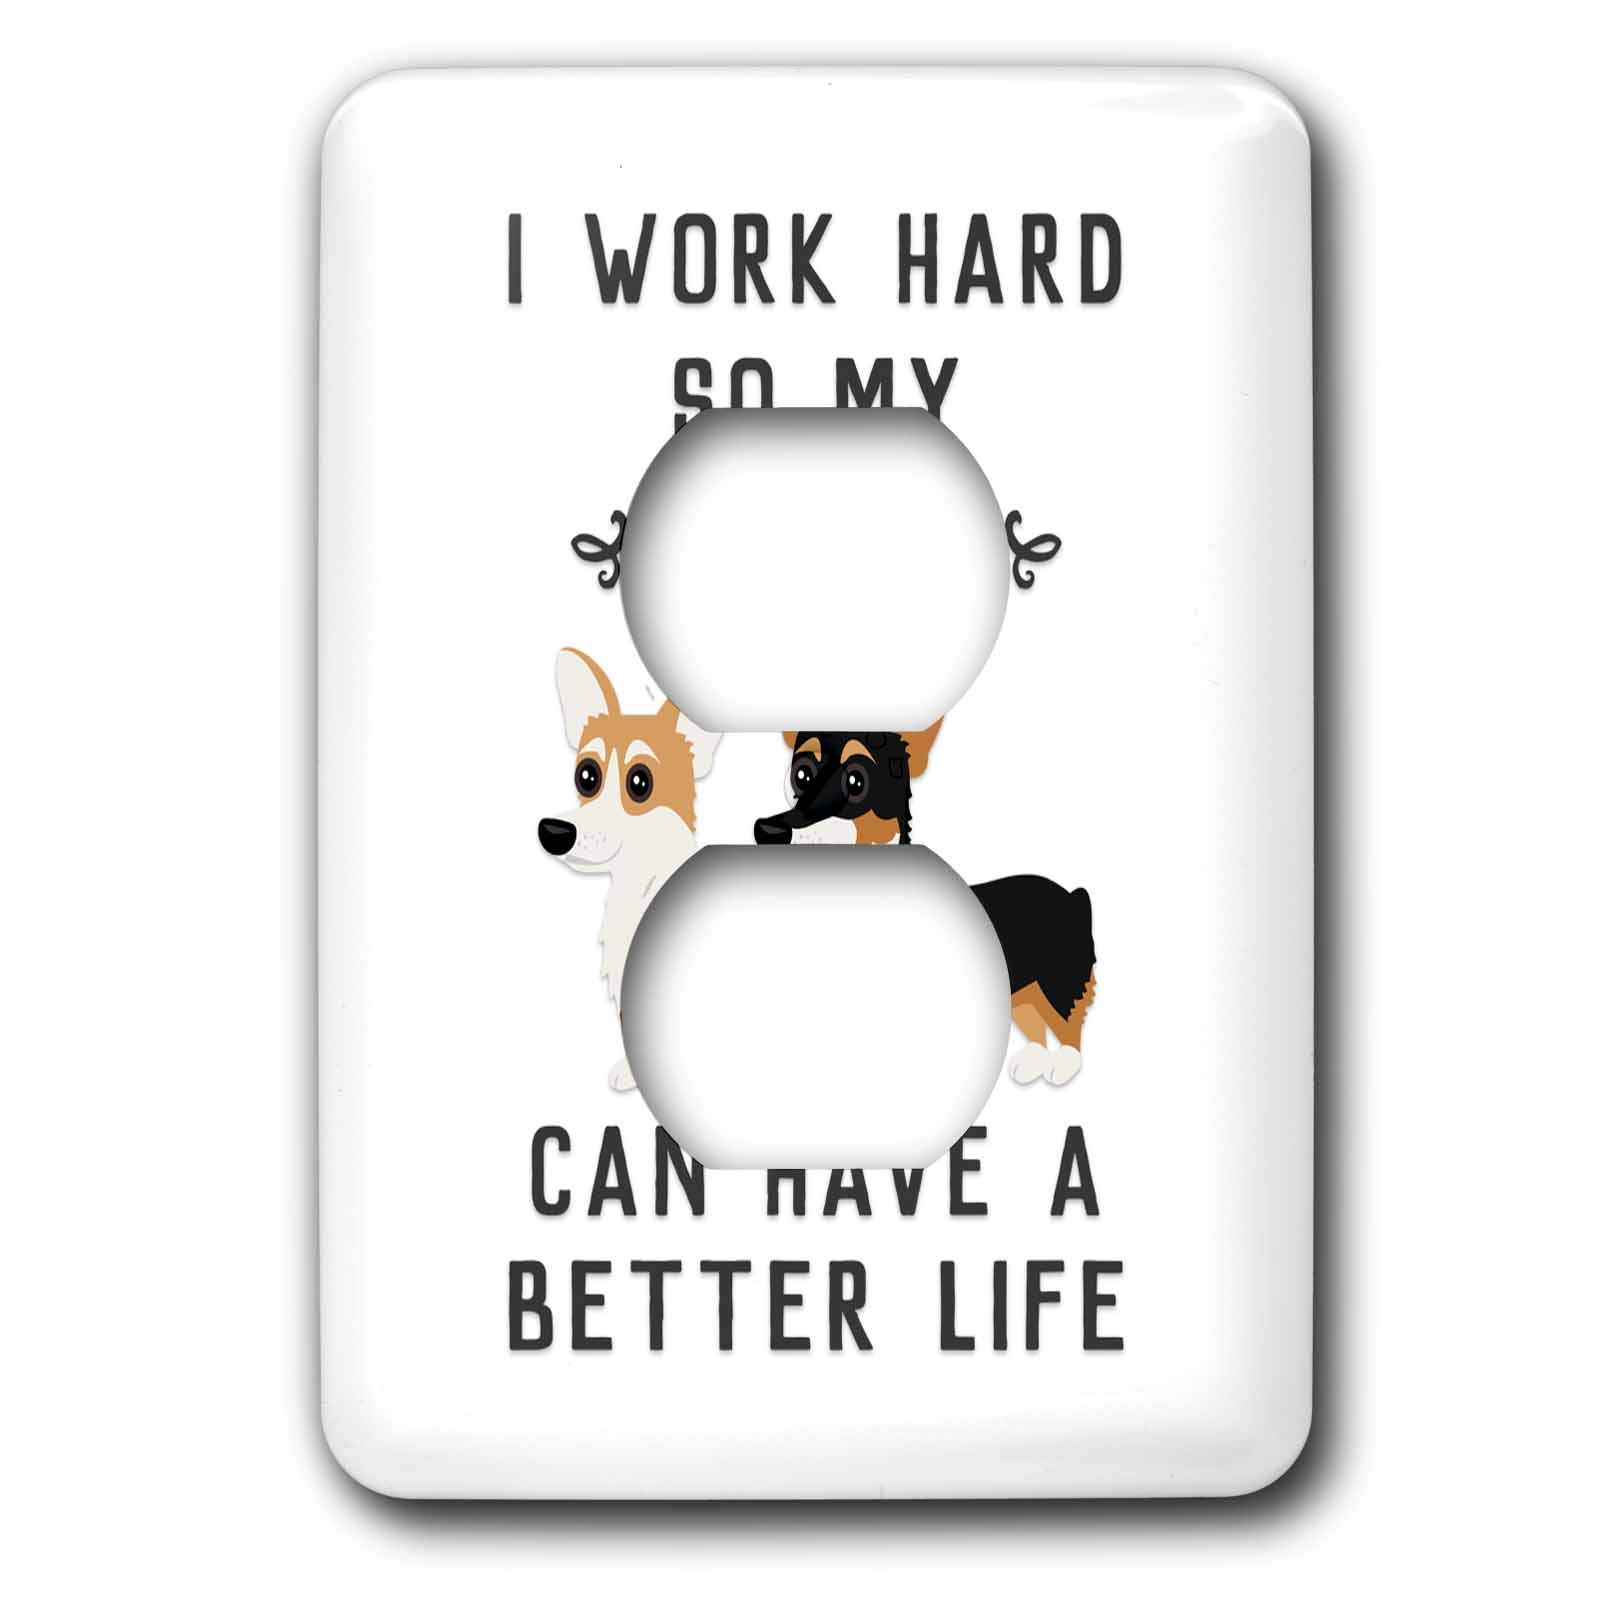 3dRose Janna Salak Designs Text Art - I Work Hard So My Corgis Can Have A Better Life - Light Switch Covers - 2 plug outlet cover (lsp_289655_6)